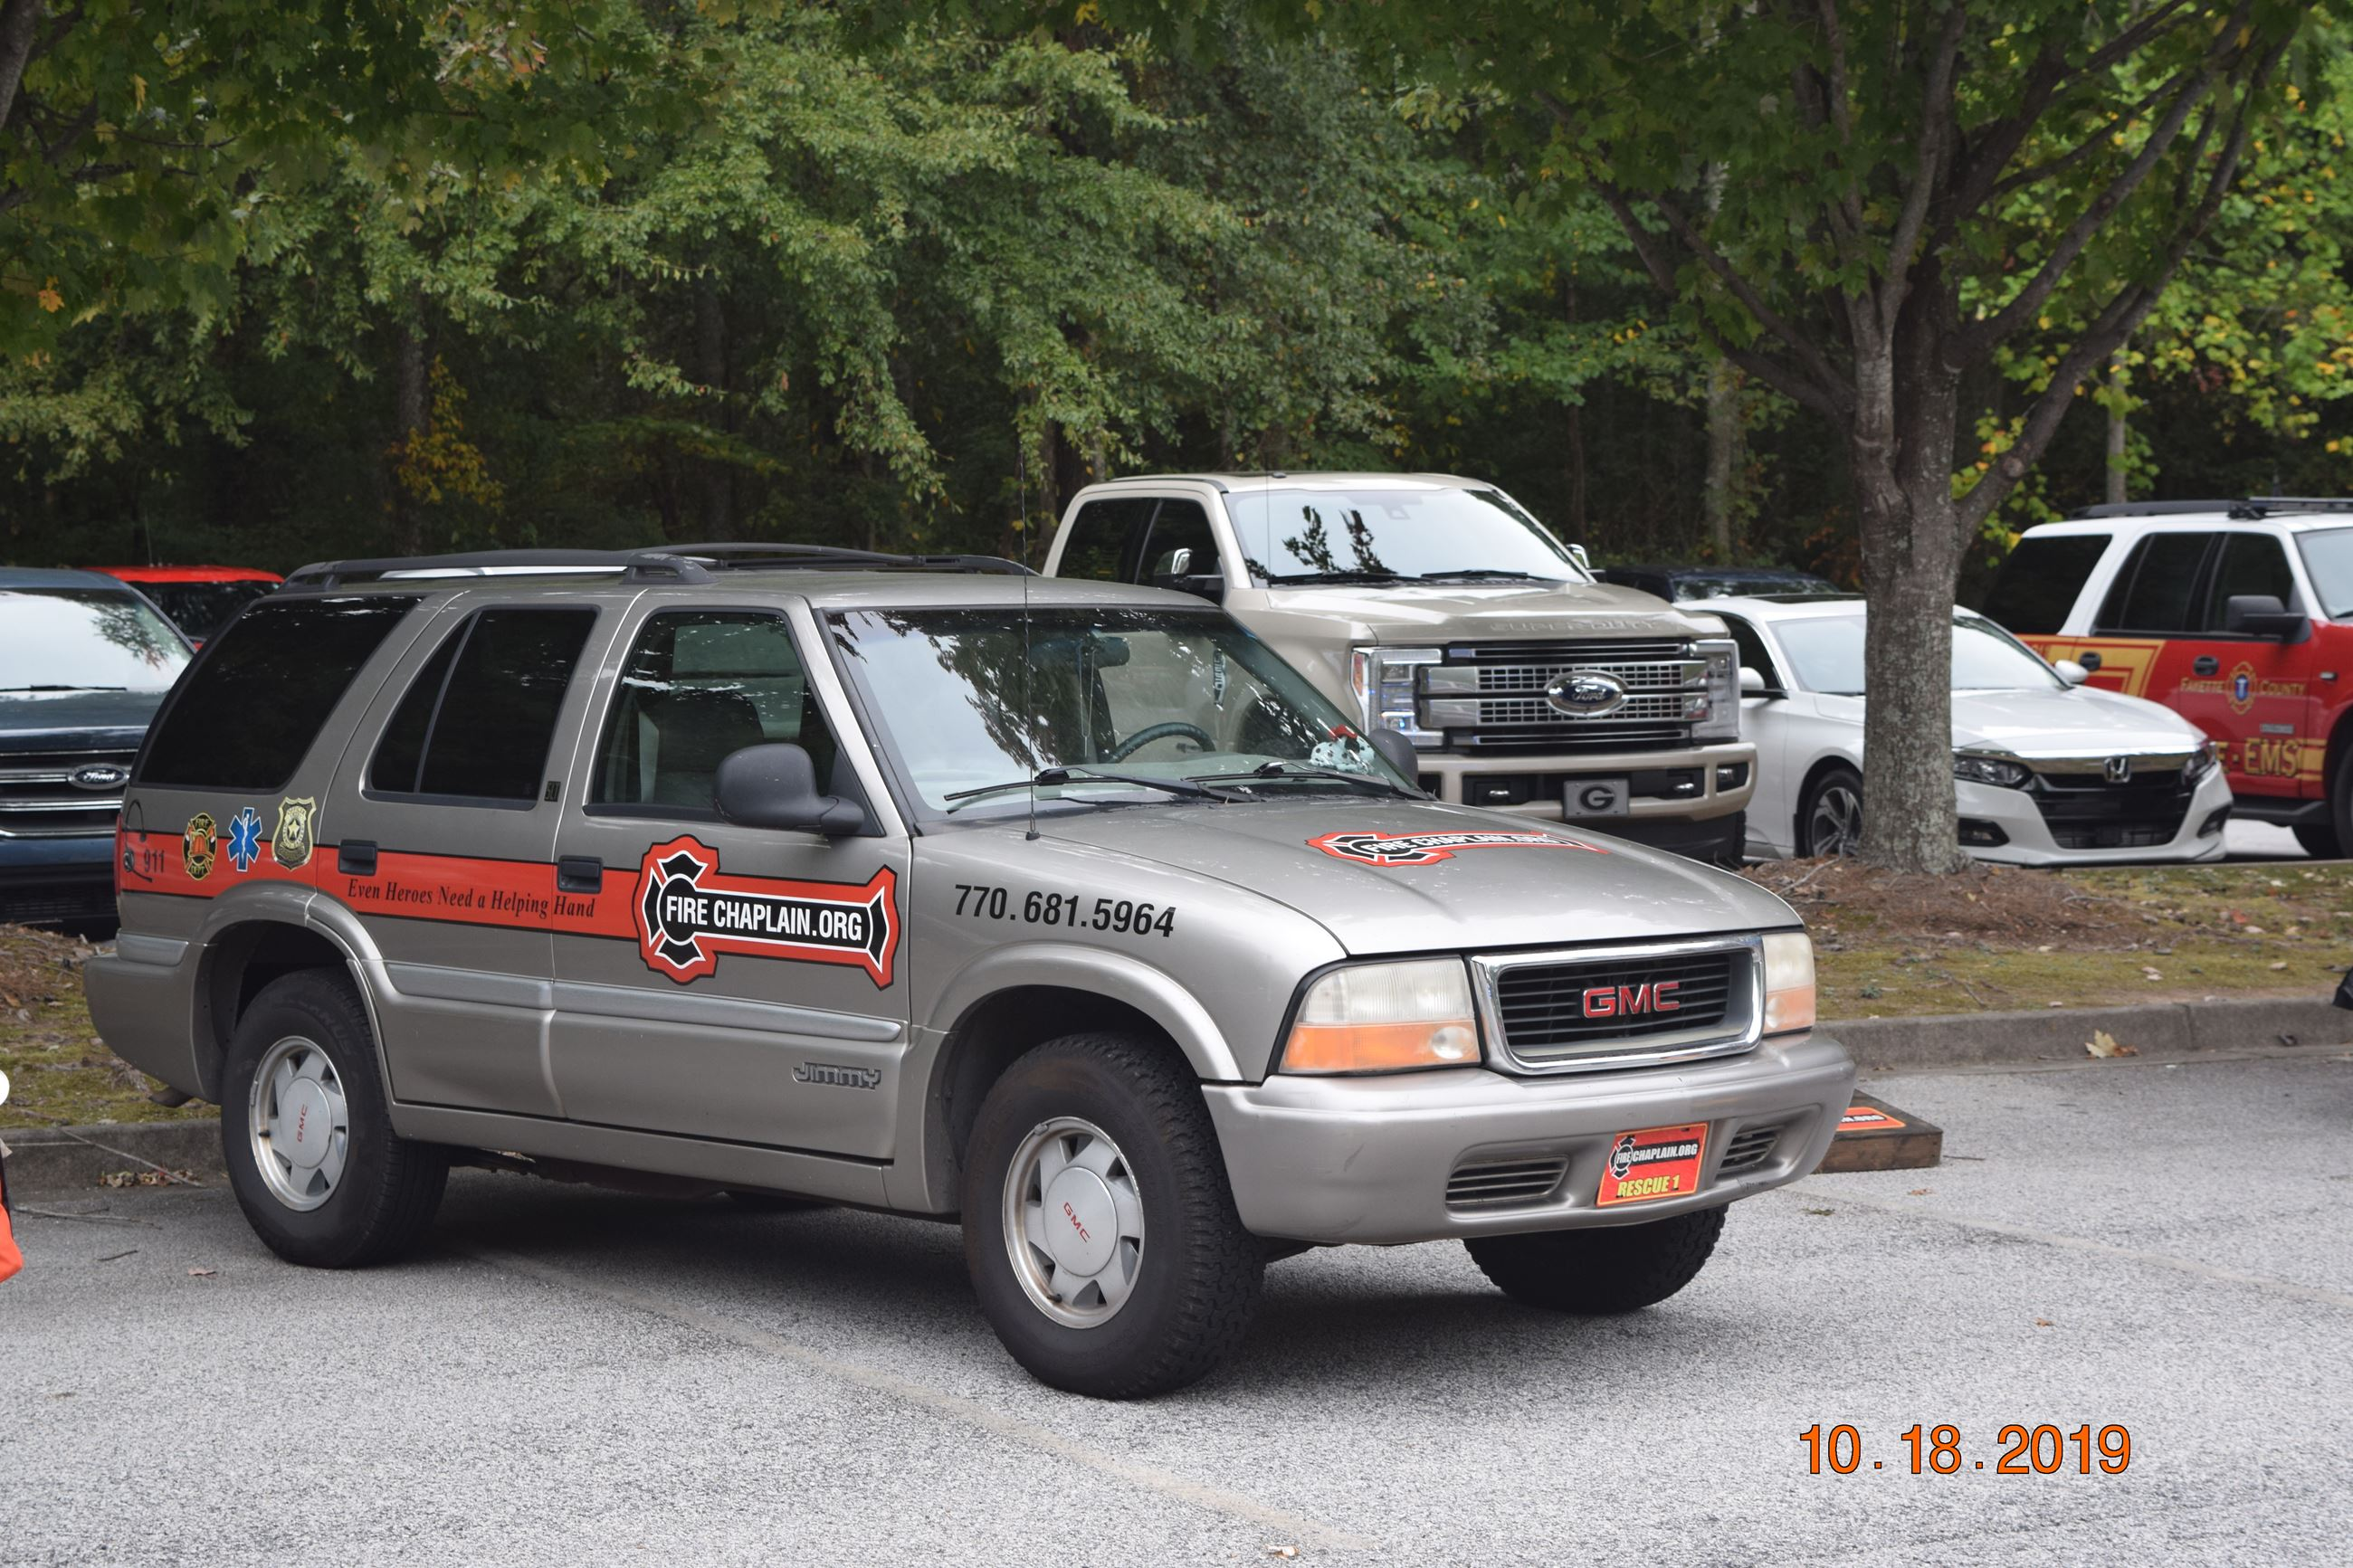 fire chaplain.org car